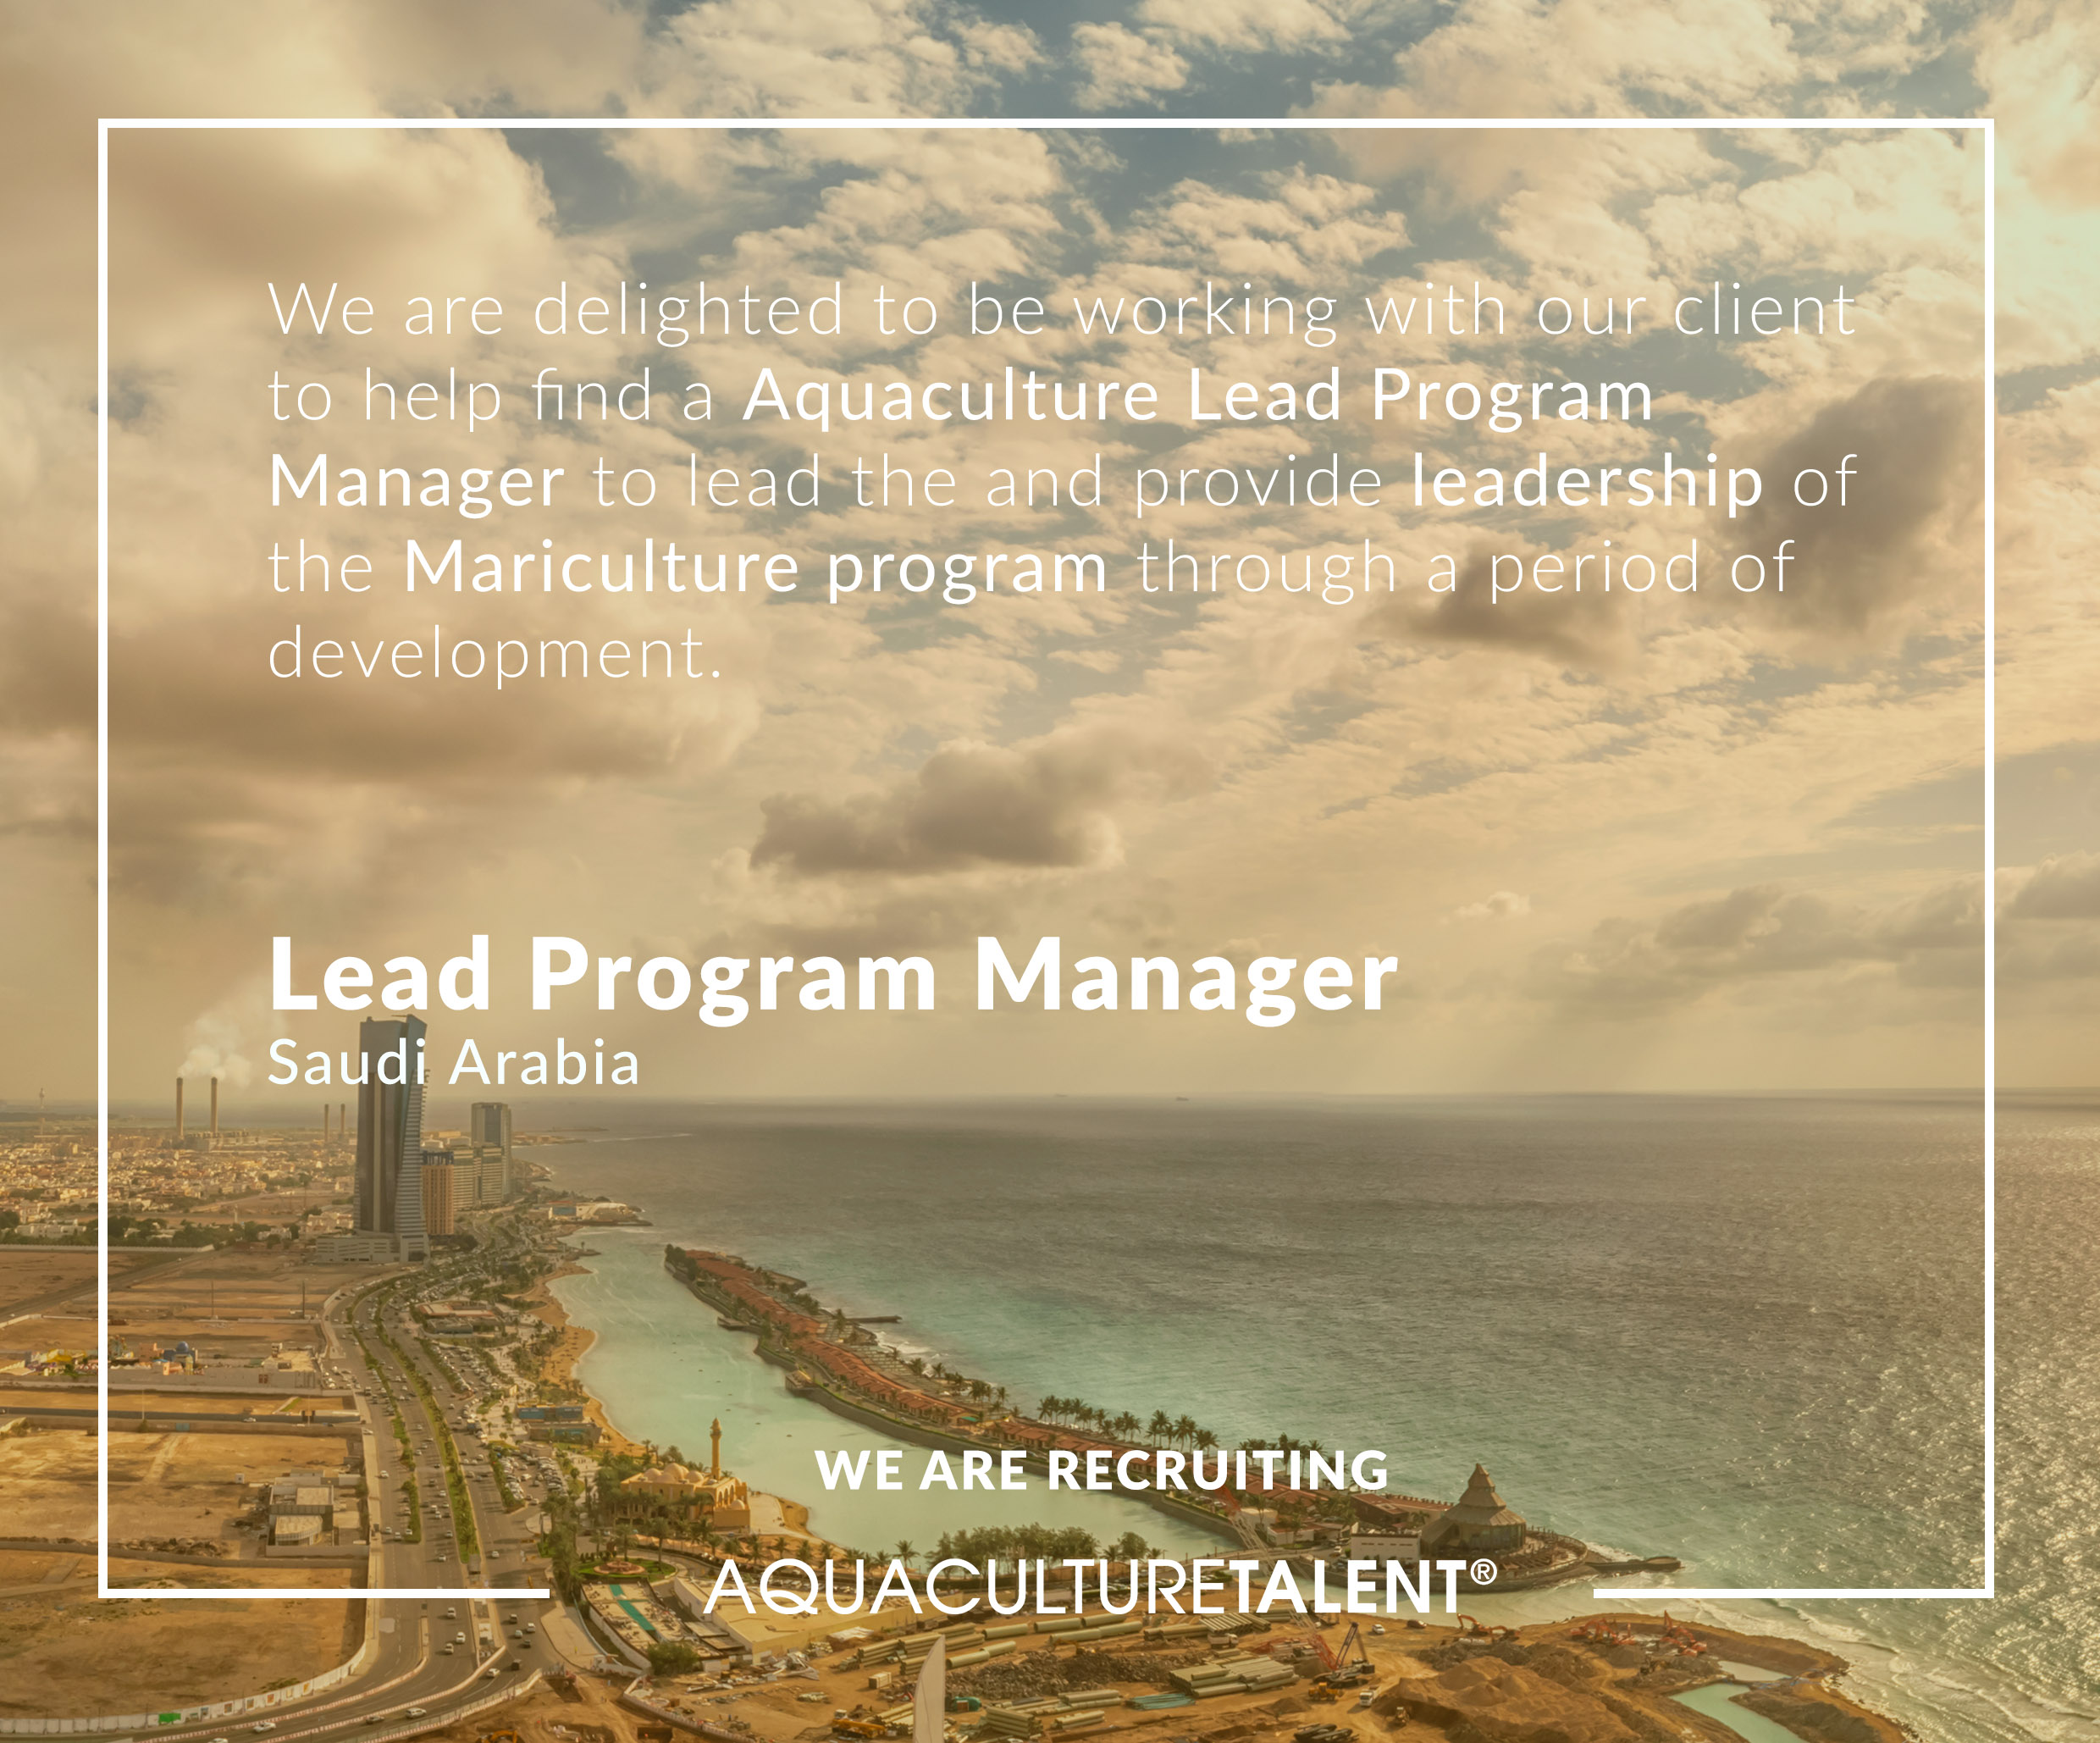 Aquaculture Lead Program Manager